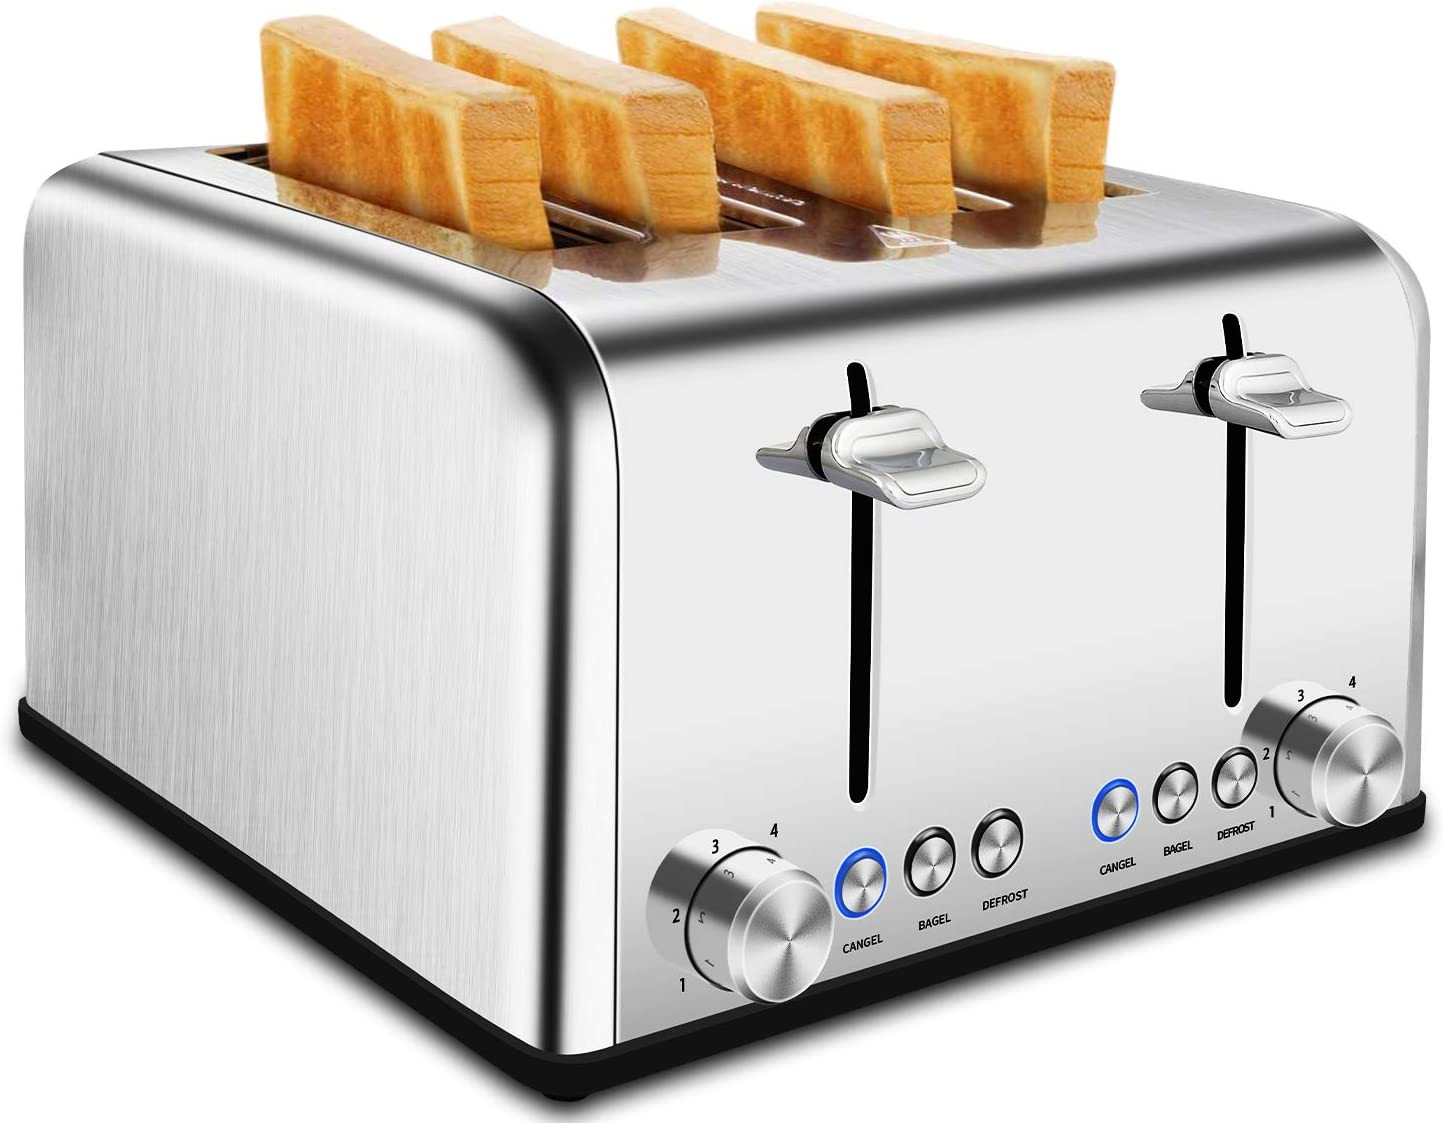 4 Slice Toaster - CUSIMAX Extra-Wide Slot Stainless Steel Toaster with Bagel/Defrost/Cancel Function, 6 Shade Settings Bread Toaster with High Lift Lever,Removable Crumb Tray & Cord Storage